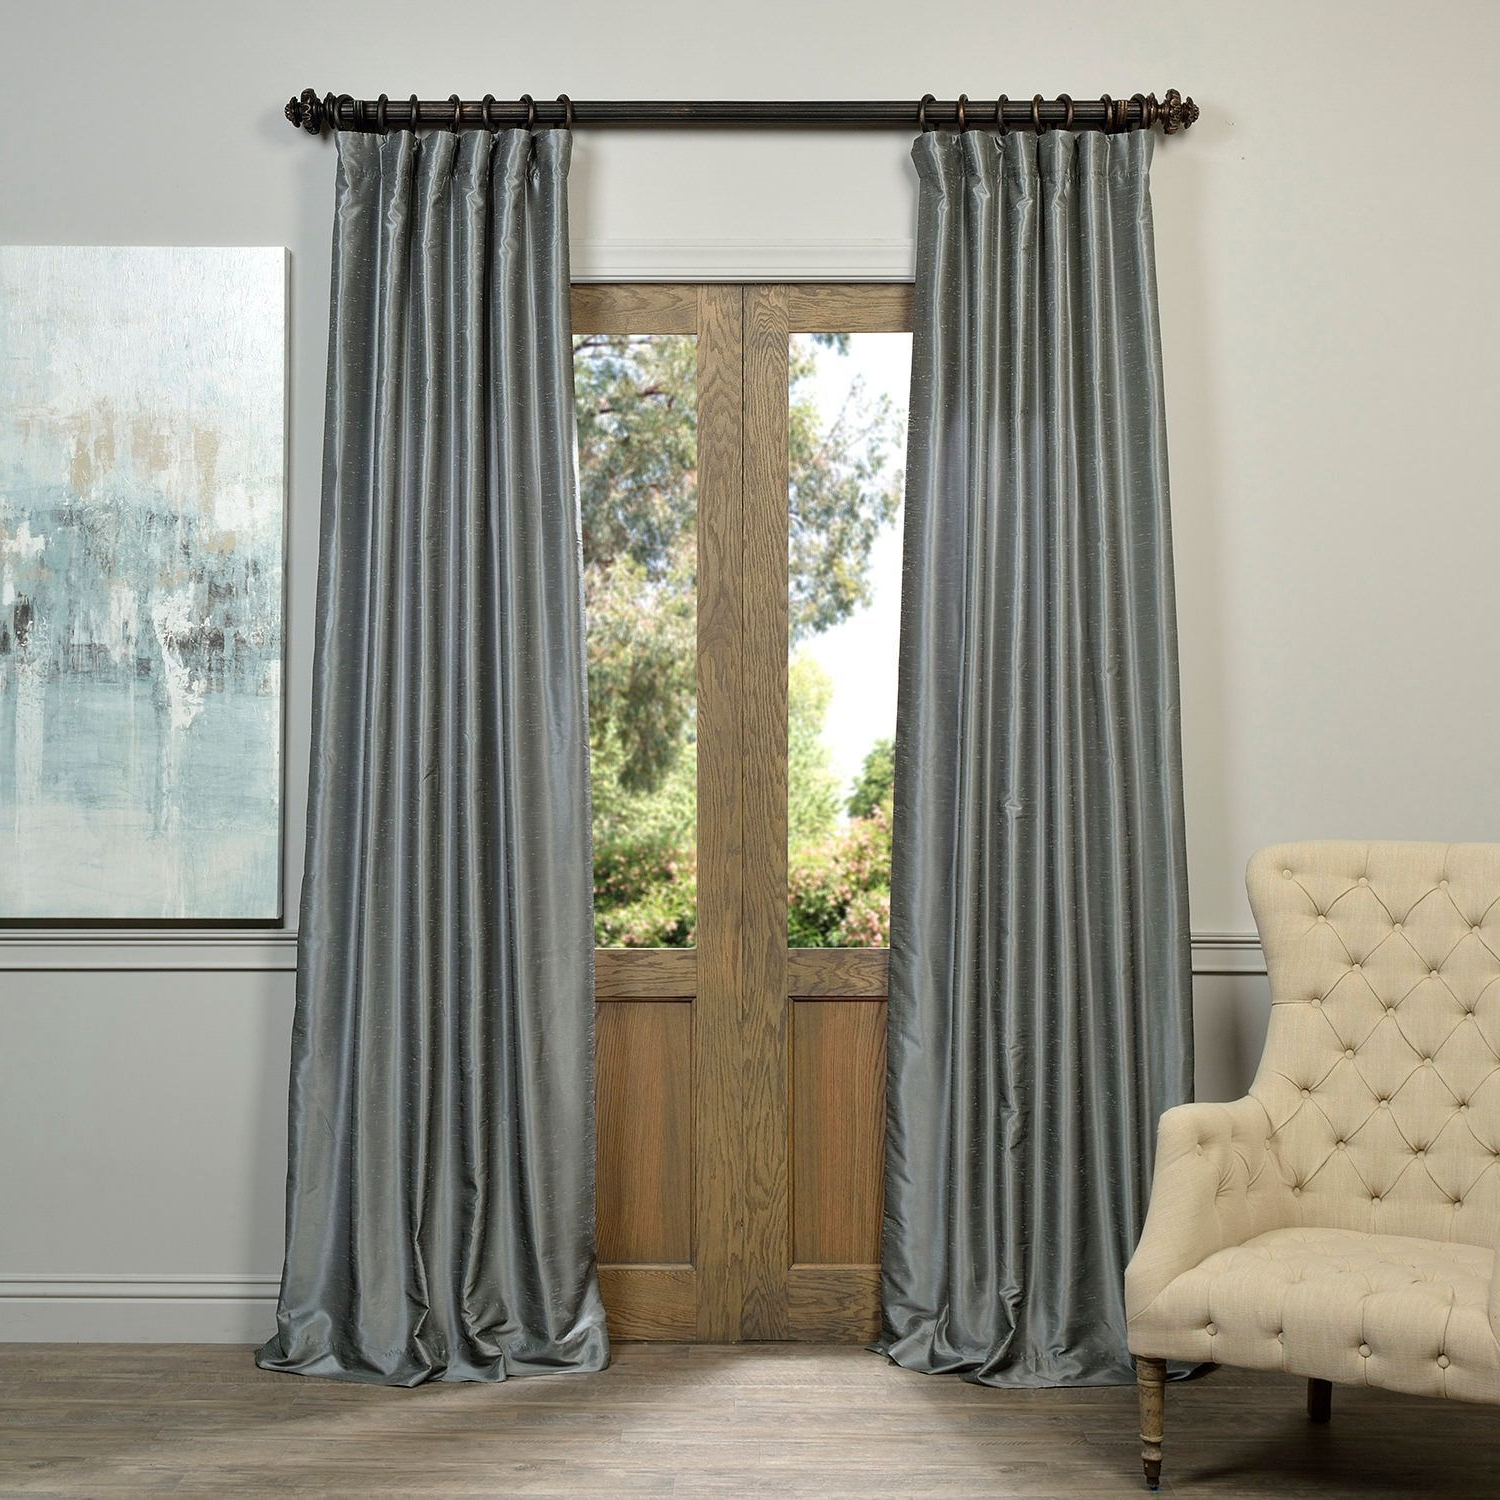 Latest Exclusive Fabrics Storm Grey Vintage Faux Textured Dupioni Intended For Storm Grey Vintage Faux Textured Dupioni Single Silk Curtain Panels (View 6 of 20)